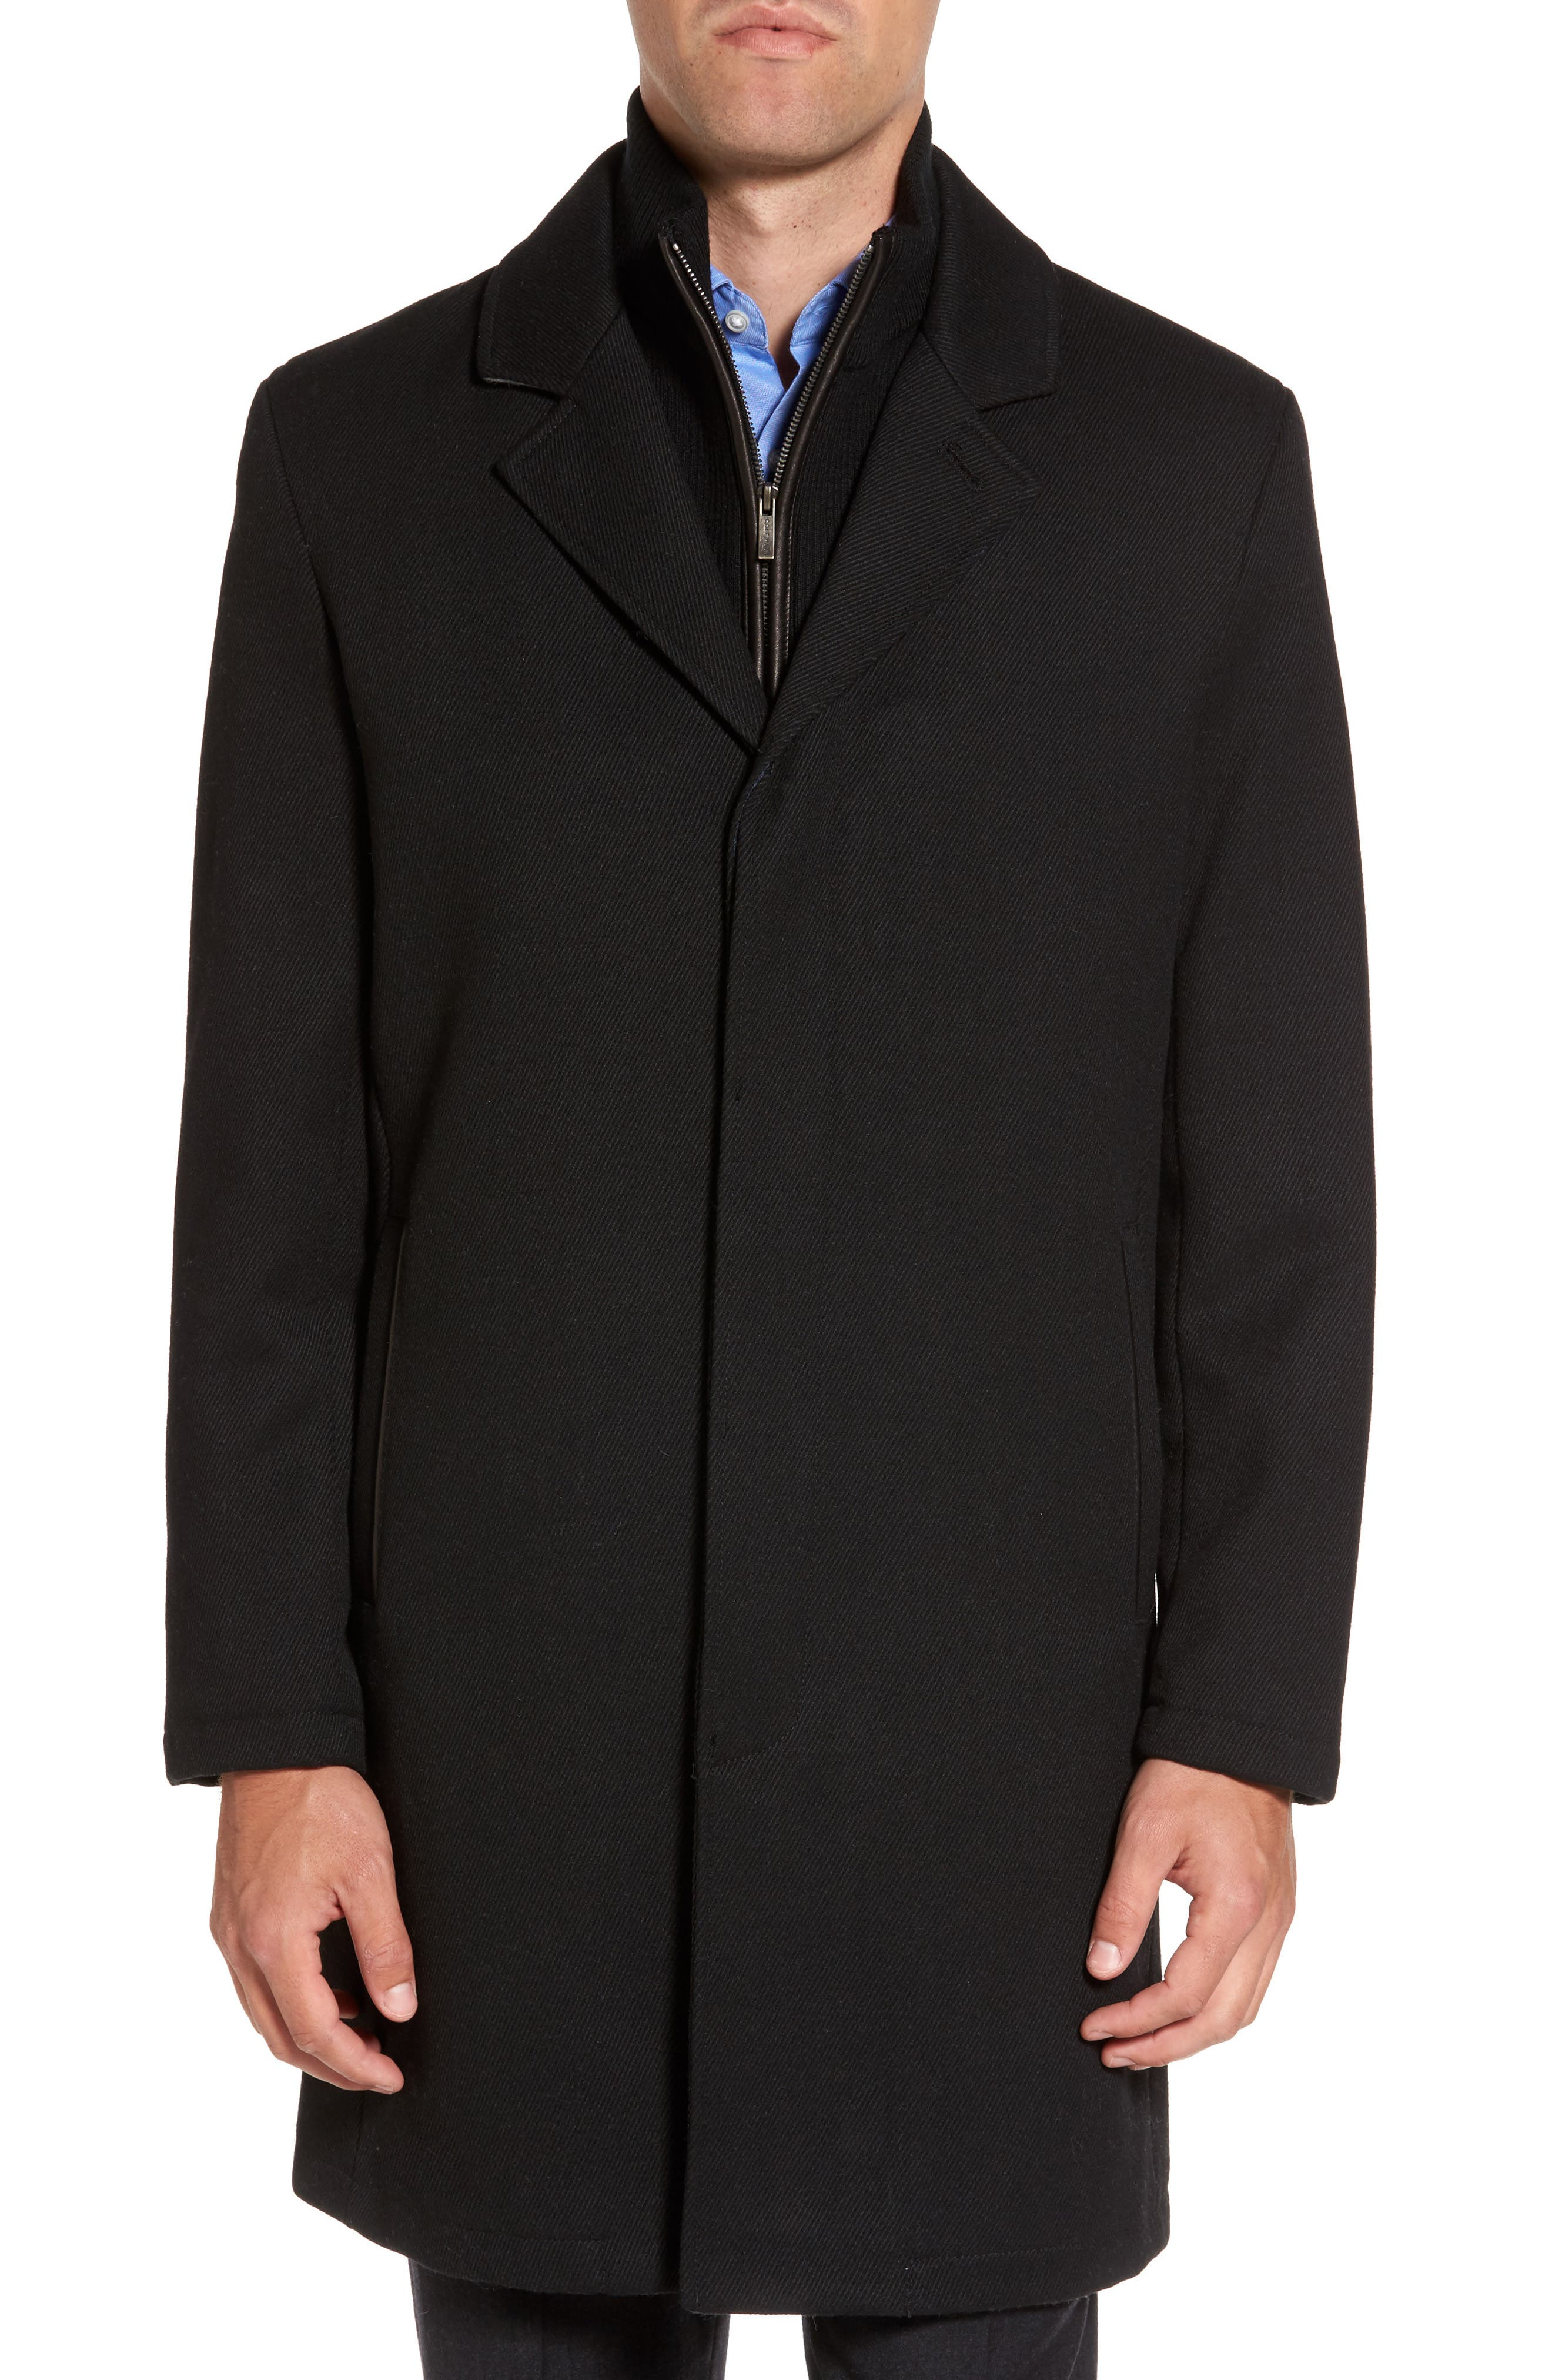 Modern Twill Topcoat with Removable Bib,                         Main,                         color, Black